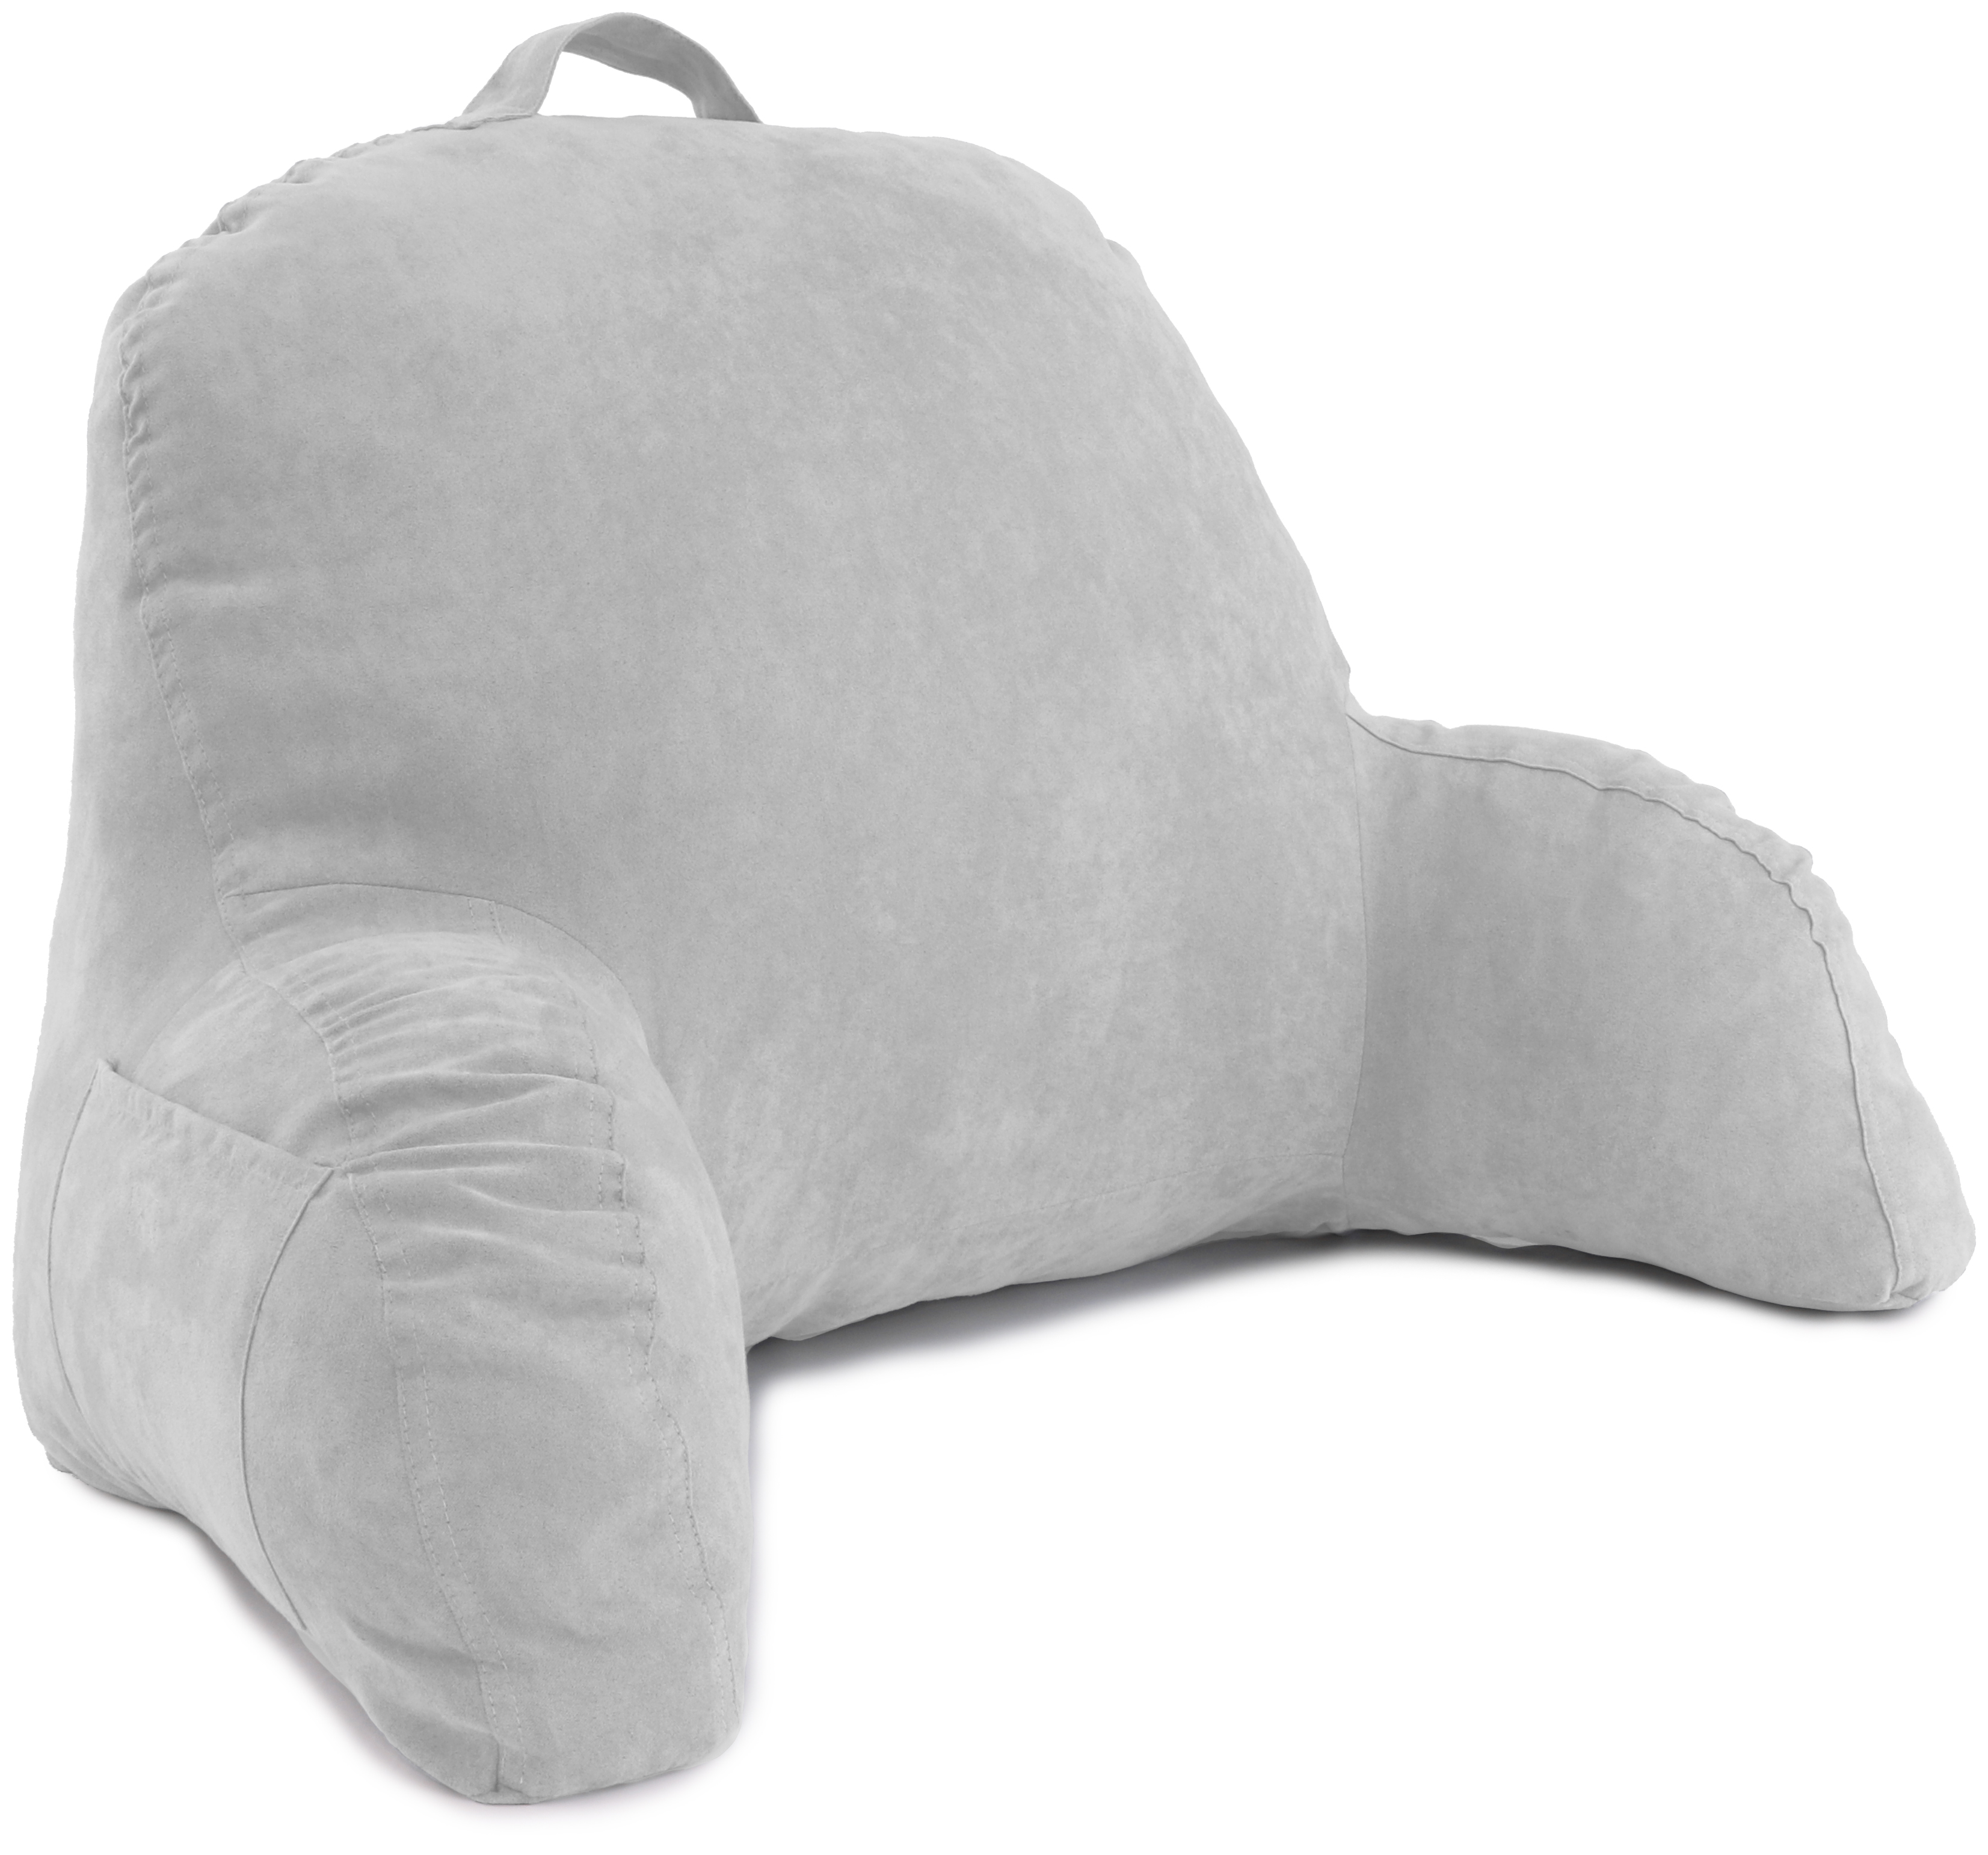 Deluxe Comfort Microsuede Bed Rest – Reading and Bedrest Lounger – Sitting Support Pillow – Soft But Firmly Stuffed Fiberfill – Backrest Pillow with Arms, Grey